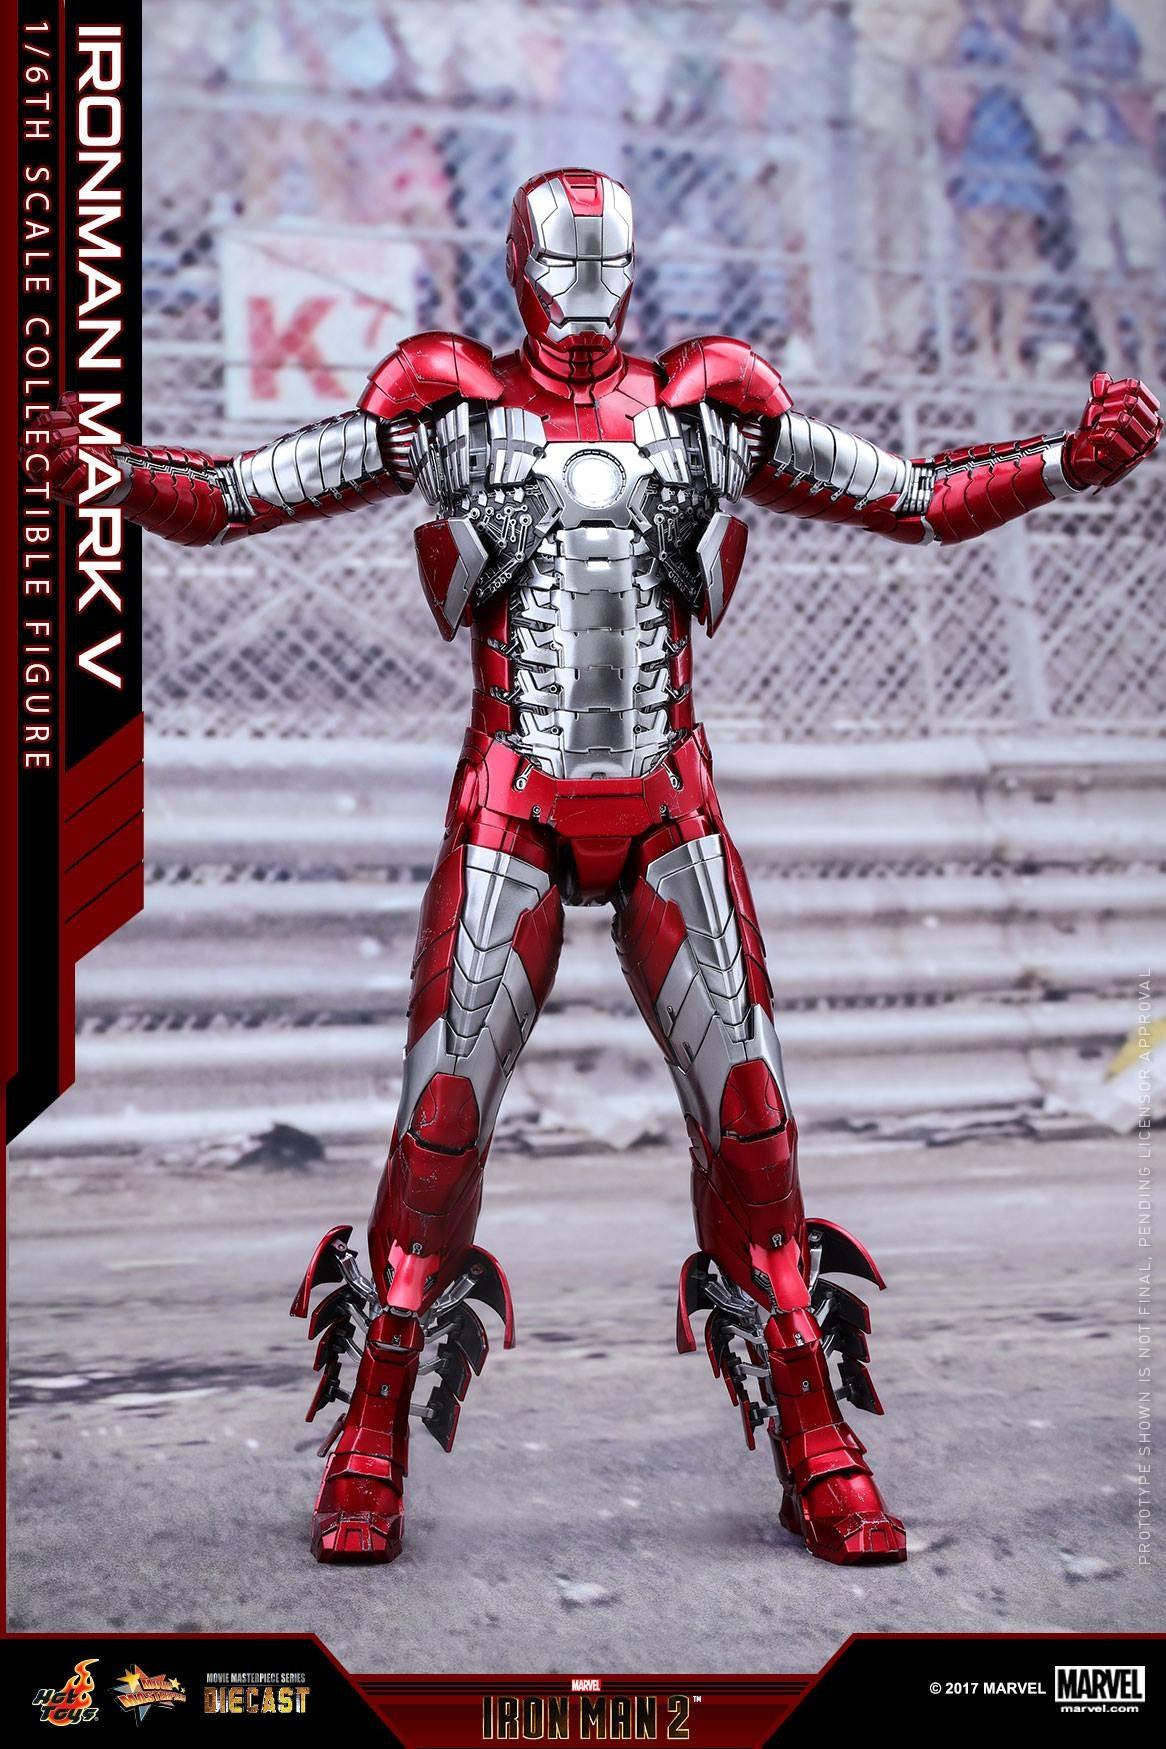 Hot Toys - MMS400D18 - Iron Man 2 - Mark V (DIECAST) - Marvelous Toys - 9